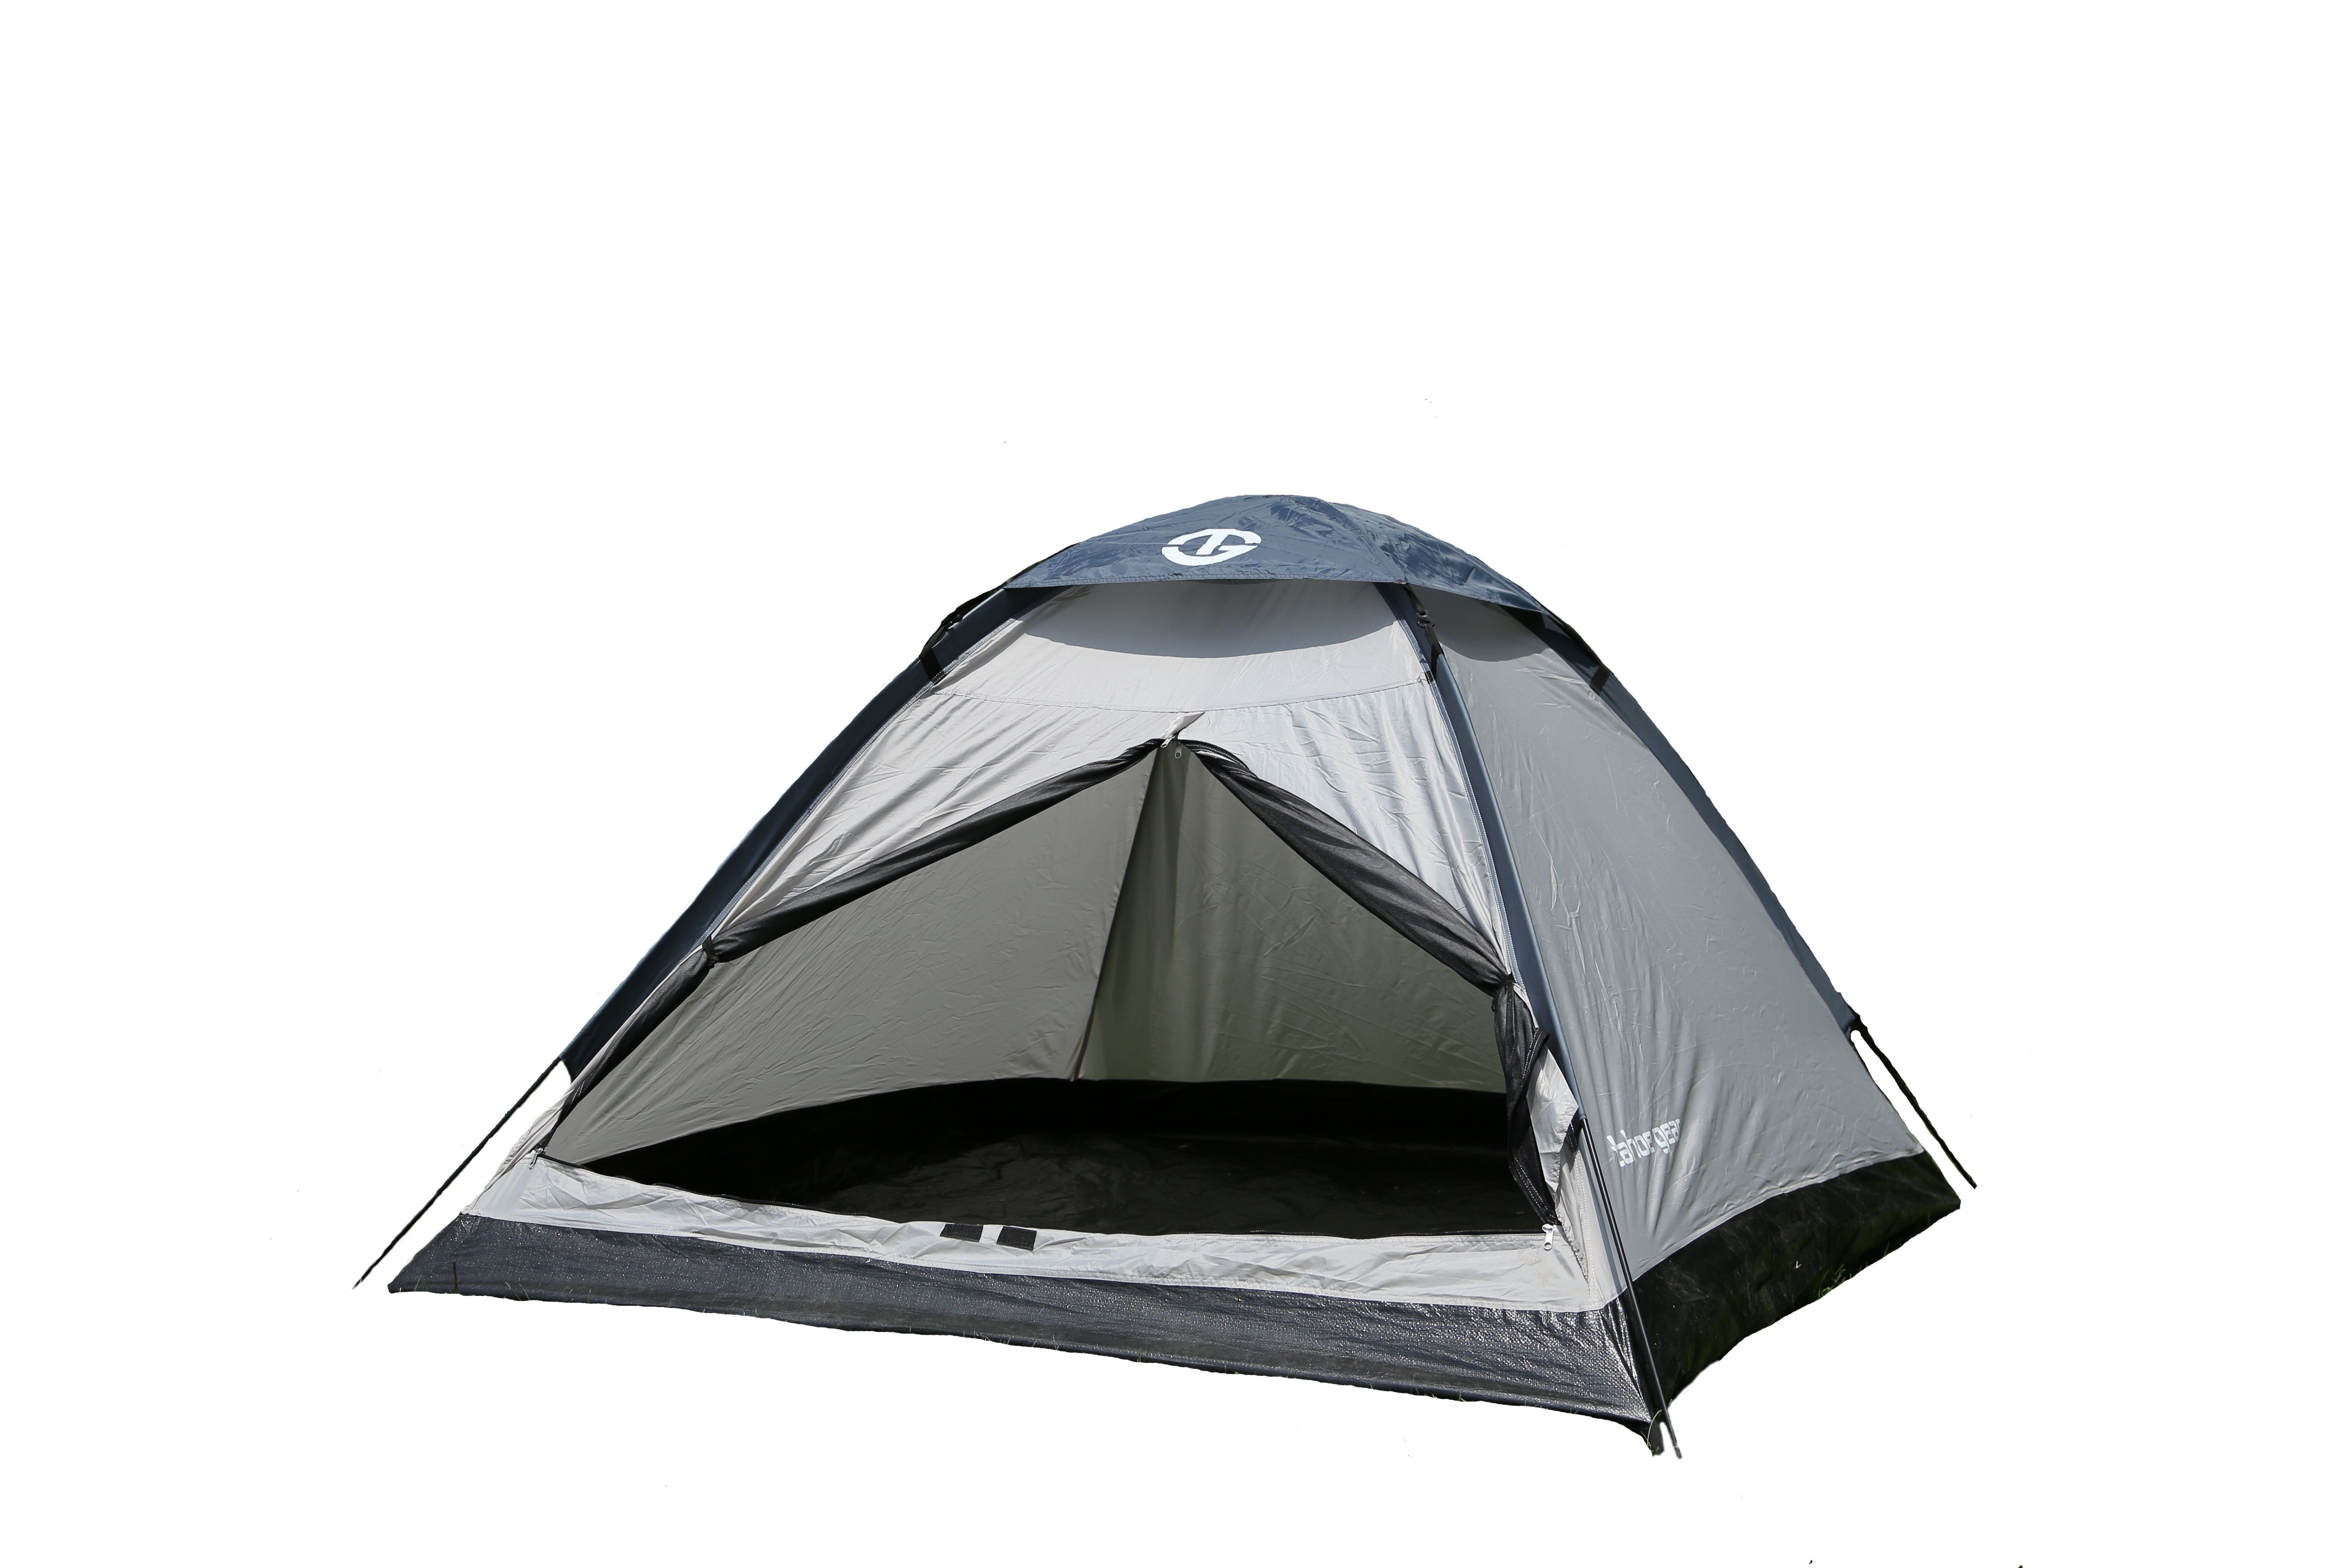 Sports & Outdoors | Outdoor | Dome tent, Tent, Tent camping